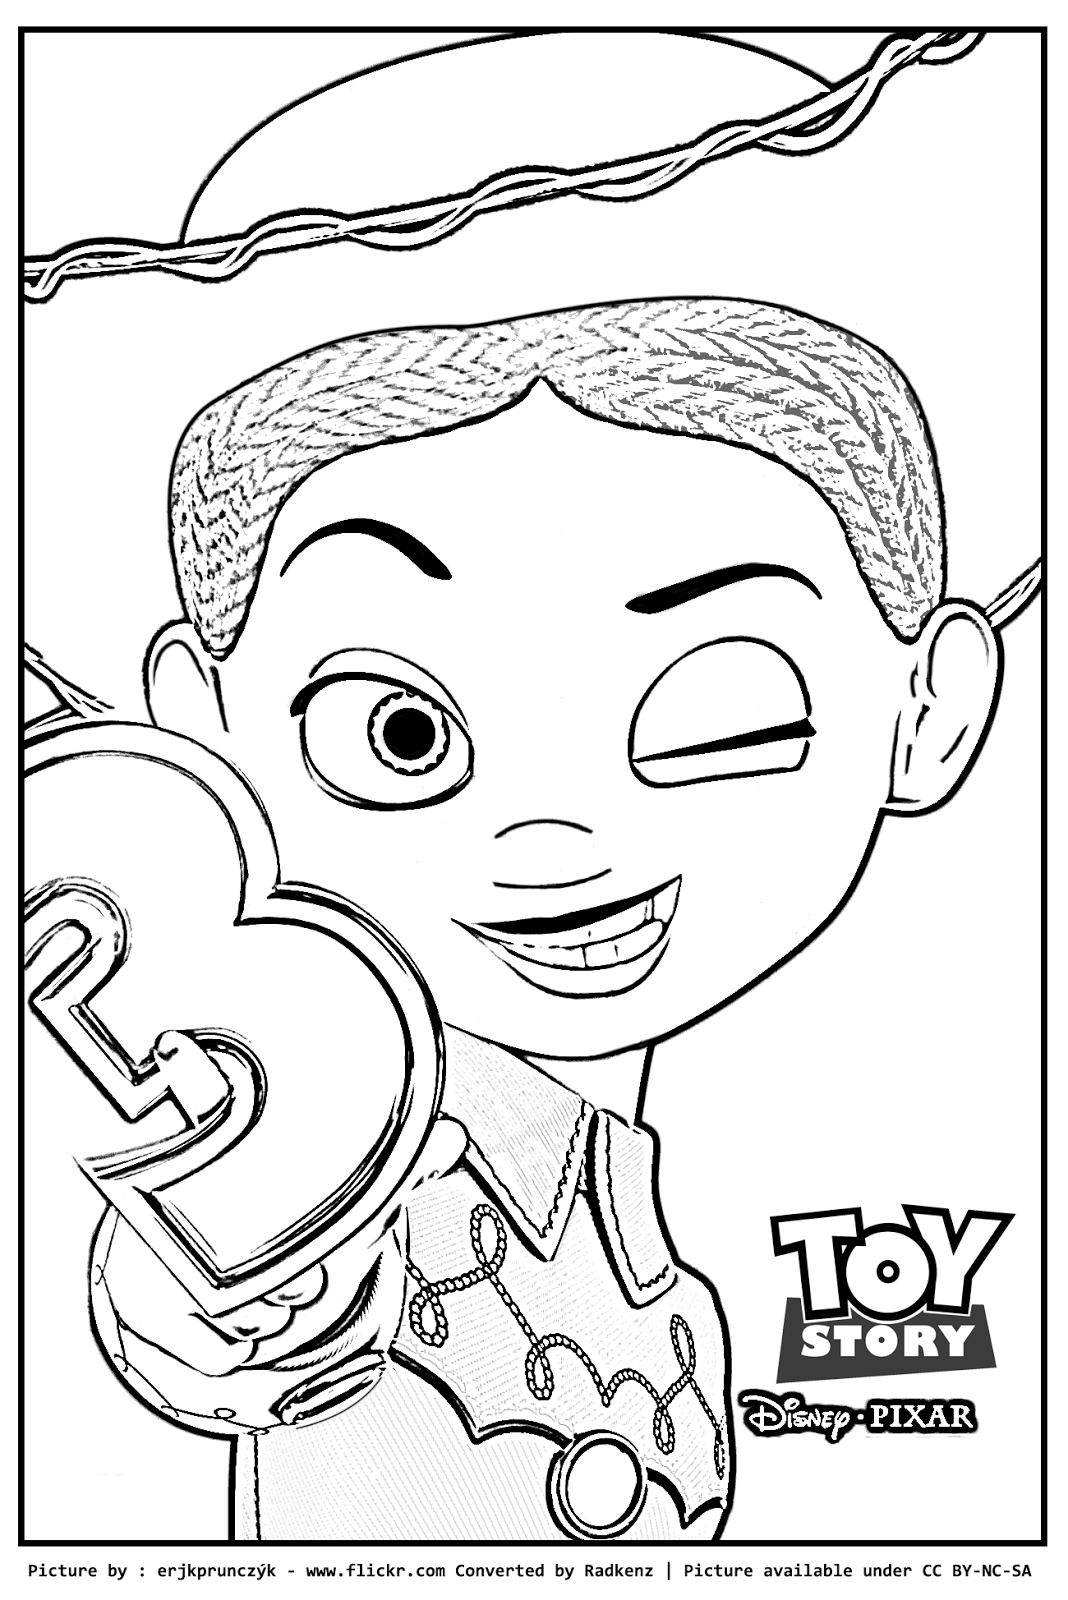 jessie coloring pages printable - photo#19